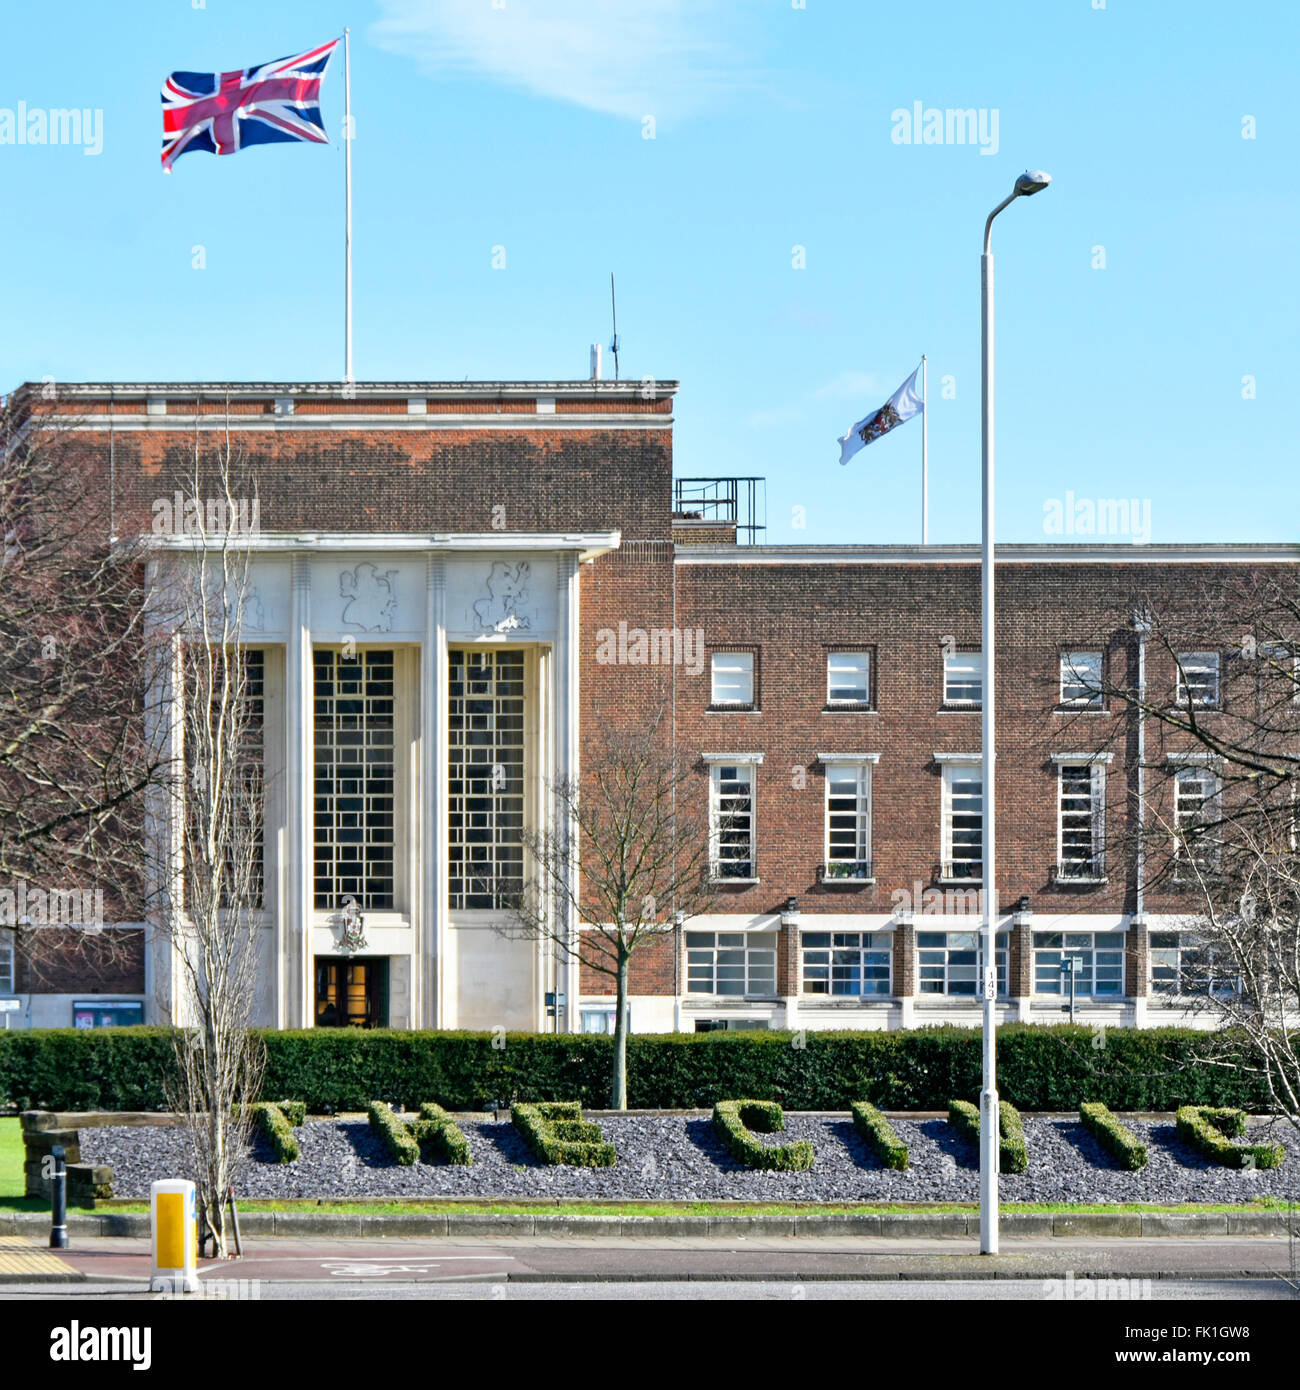 Town Hall offices in original Dagenham Civic Centre with The Civic sign formed in topiary all now part of East London - Stock Image